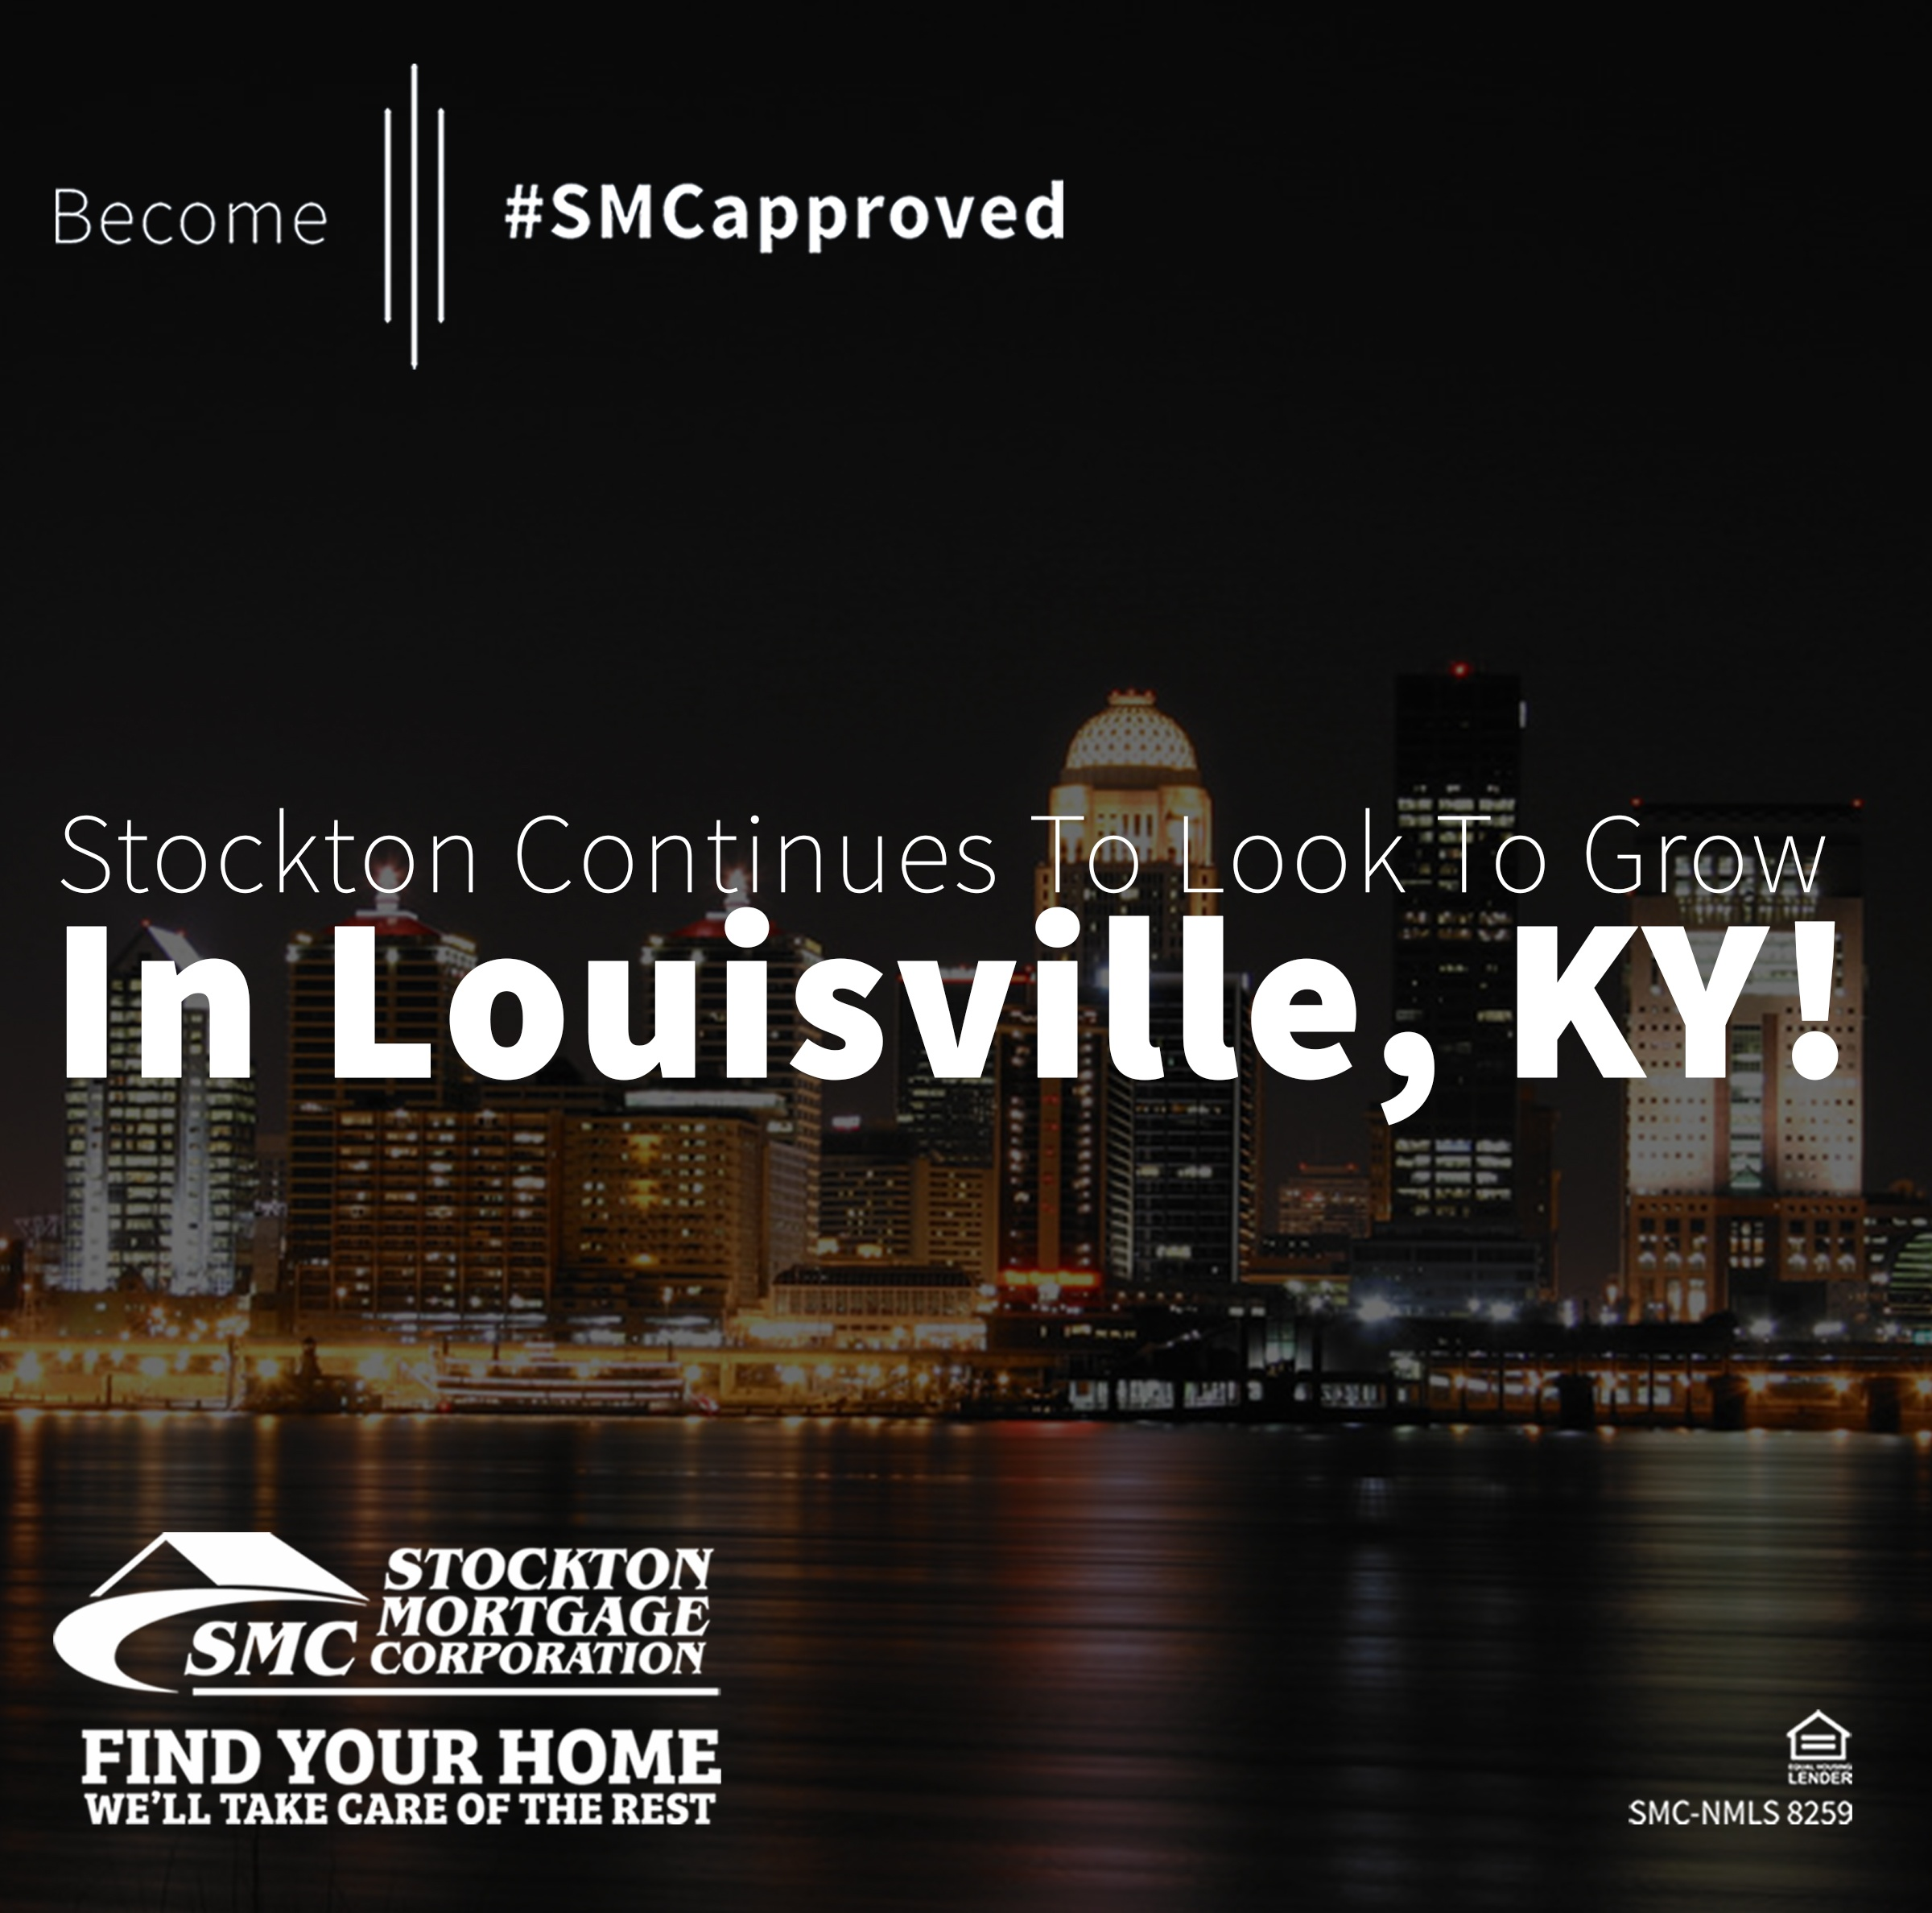 Stockton Continues To Look To Grow In Louisville, KY